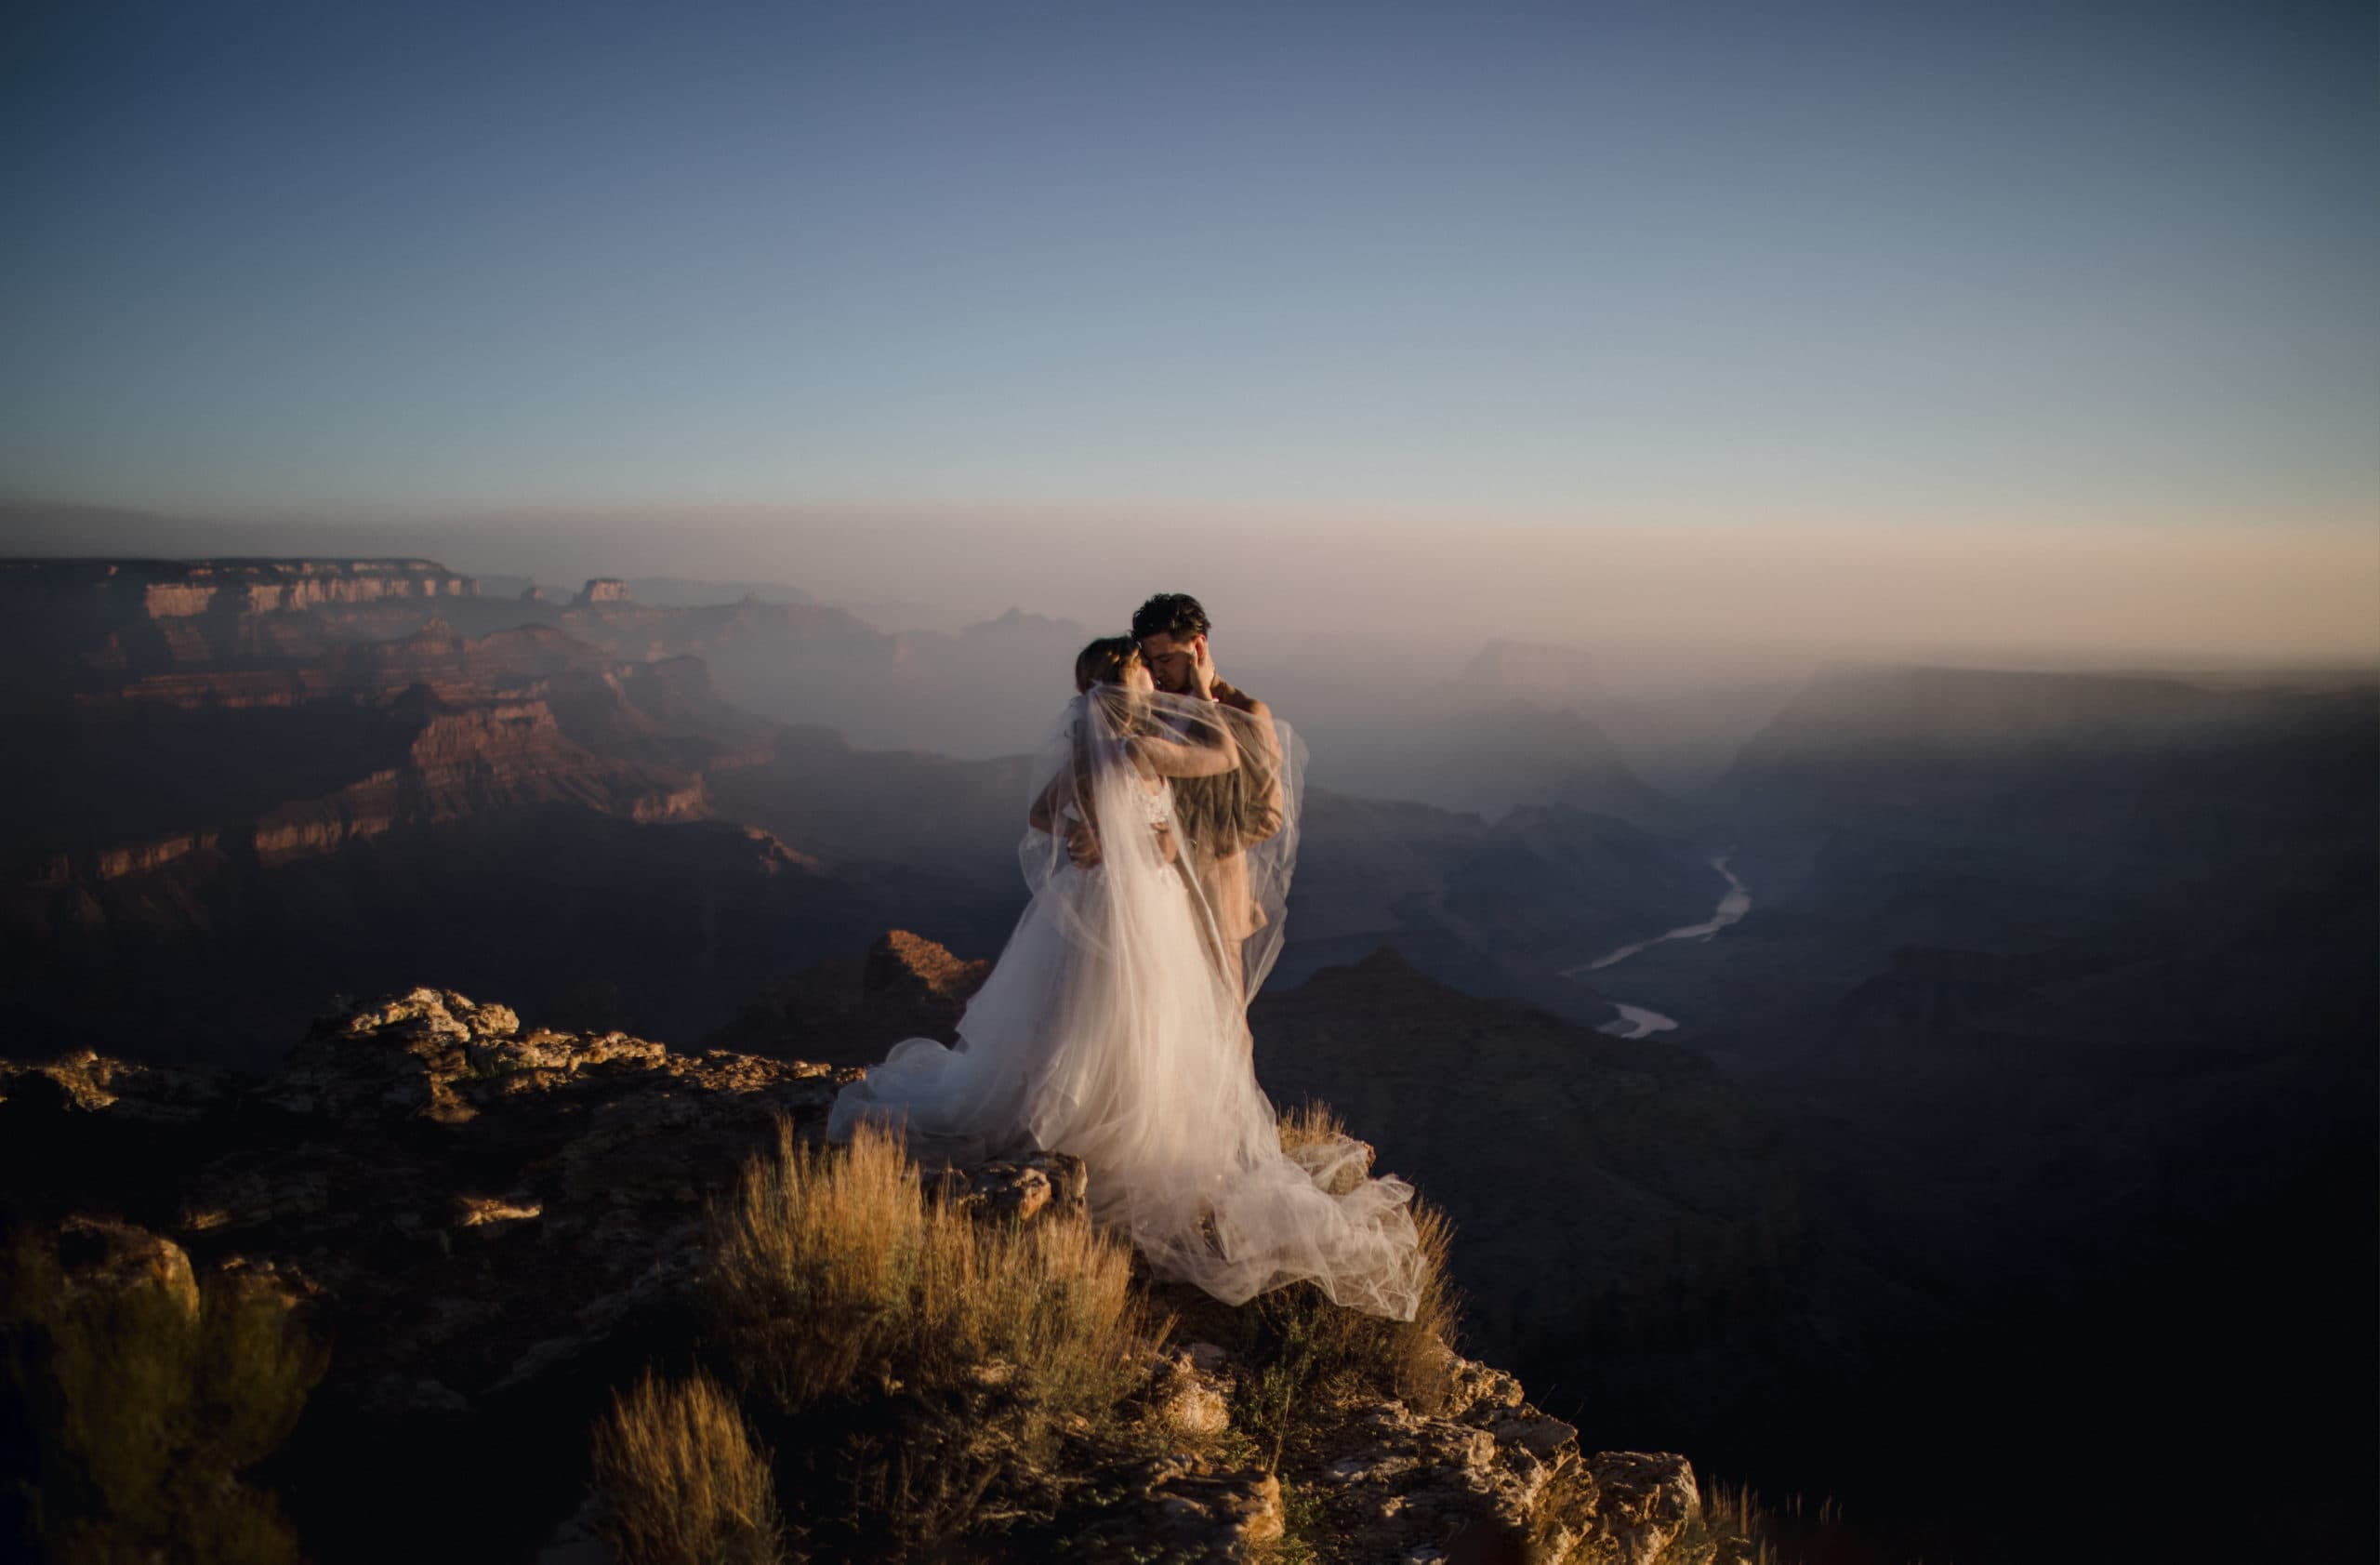 One of the best reasons to elope is the intimacy it provides for the couple.